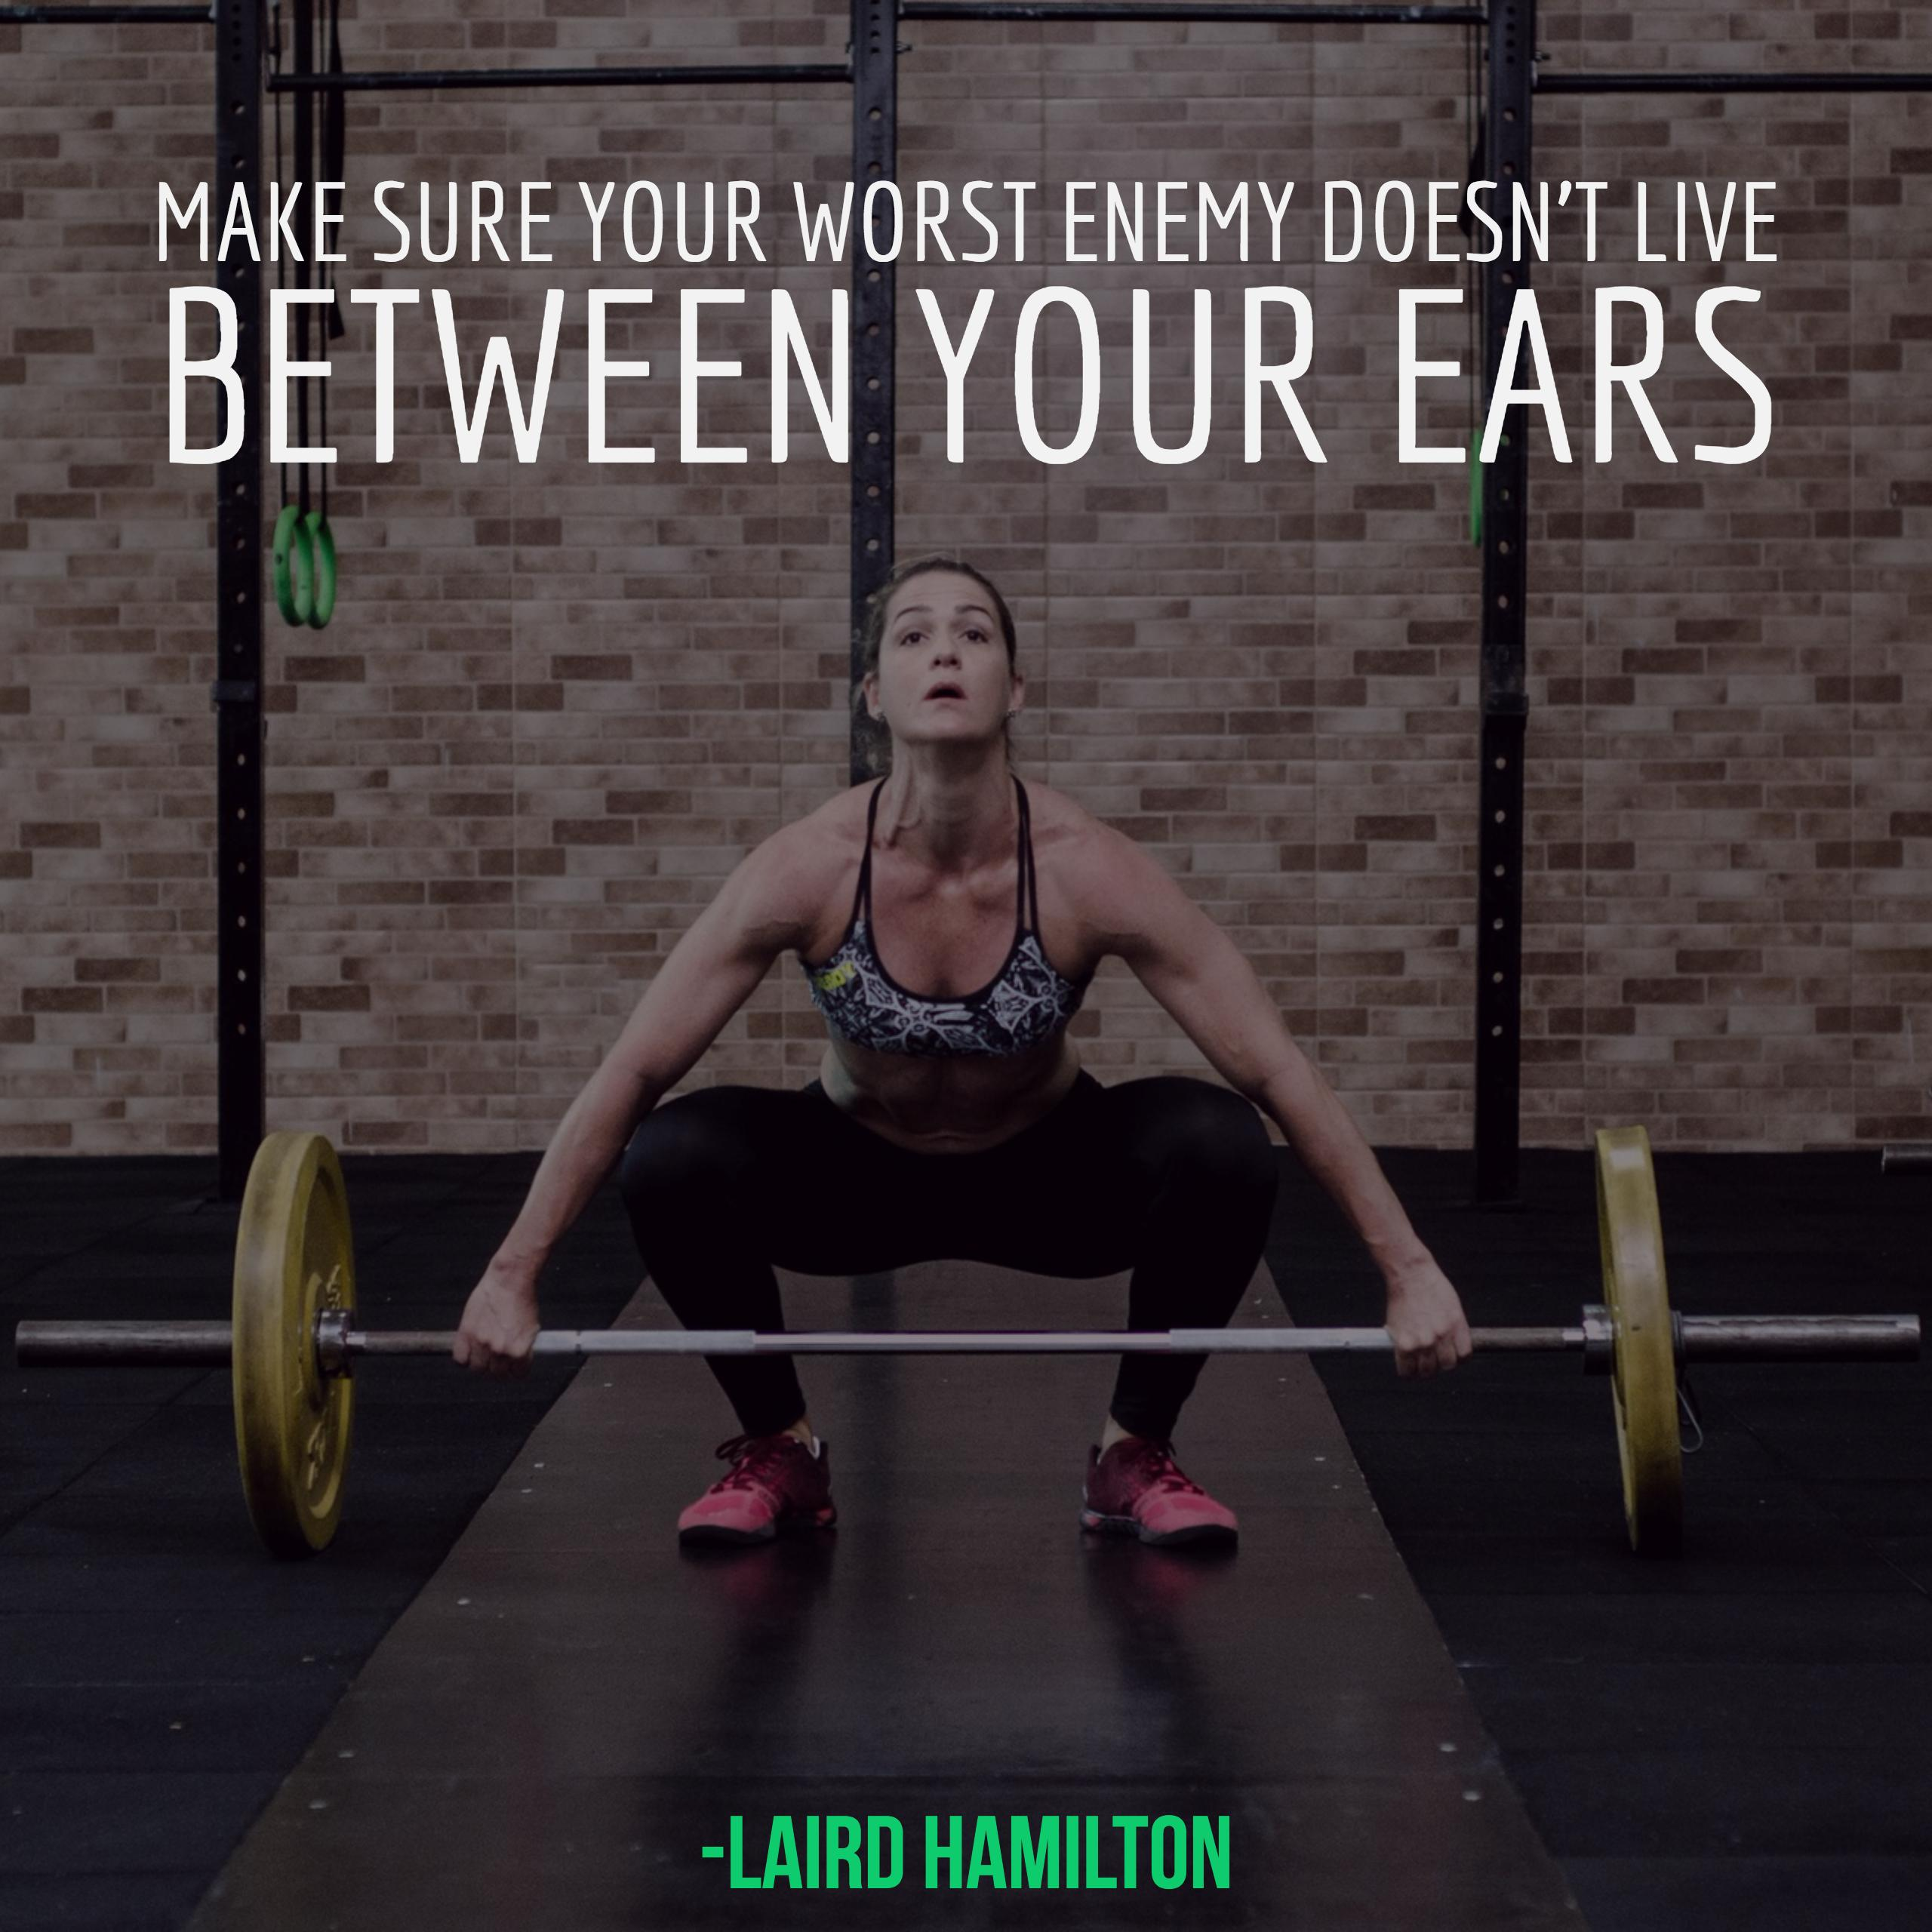 make sure your worst enemy doesn't live between your ears